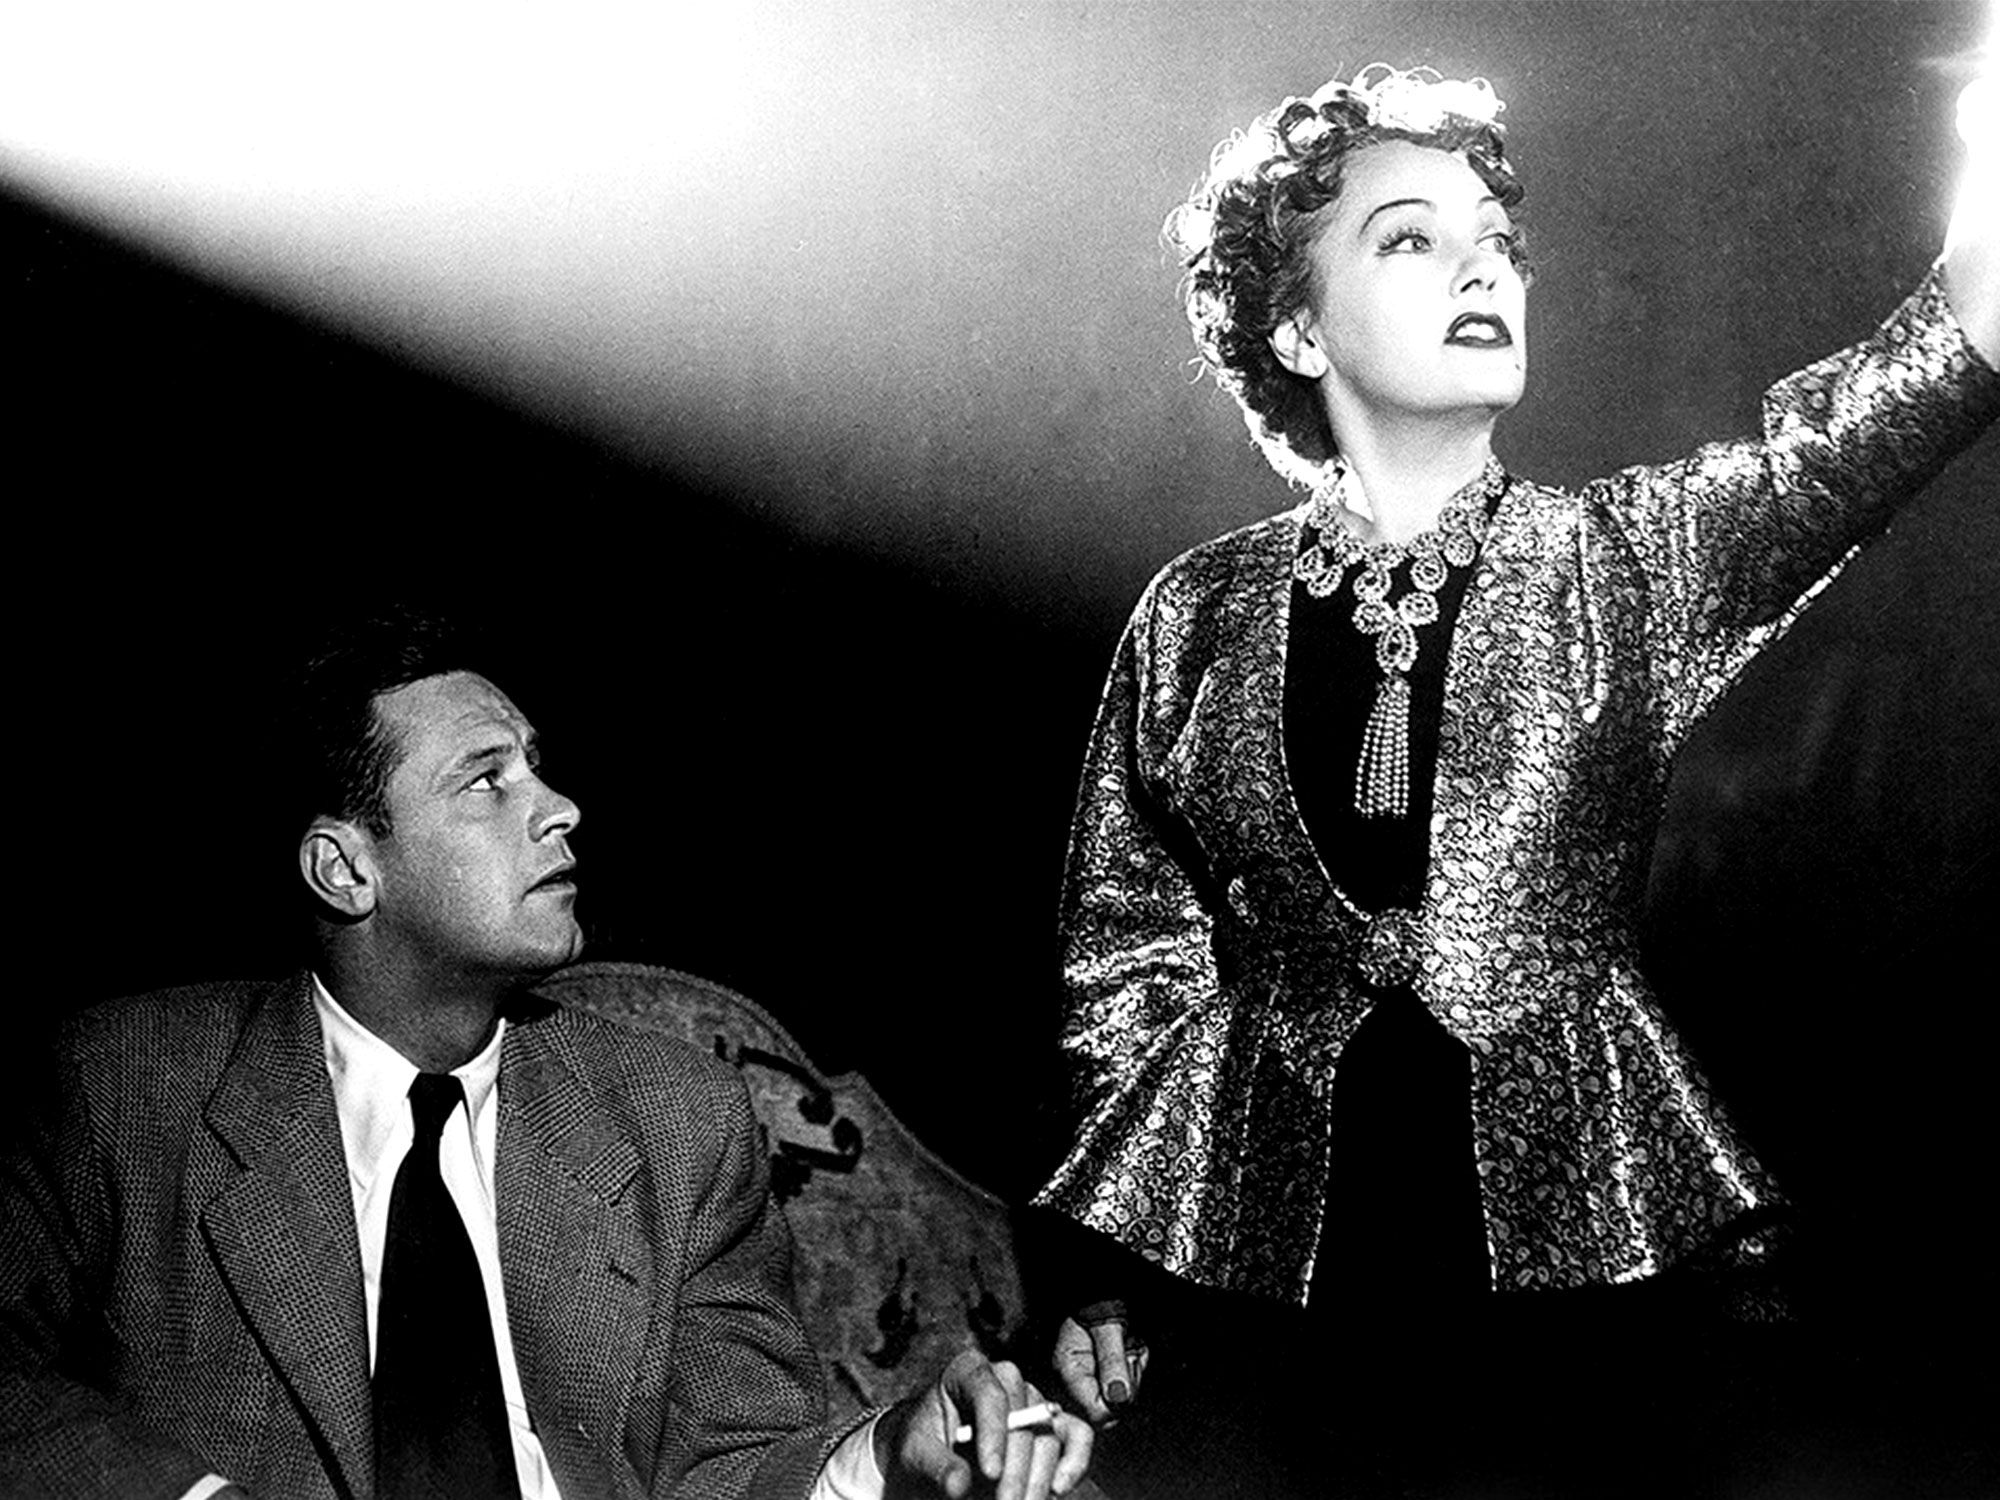 Gloria Swanson and William Holden in Sunset Blvd (1950)